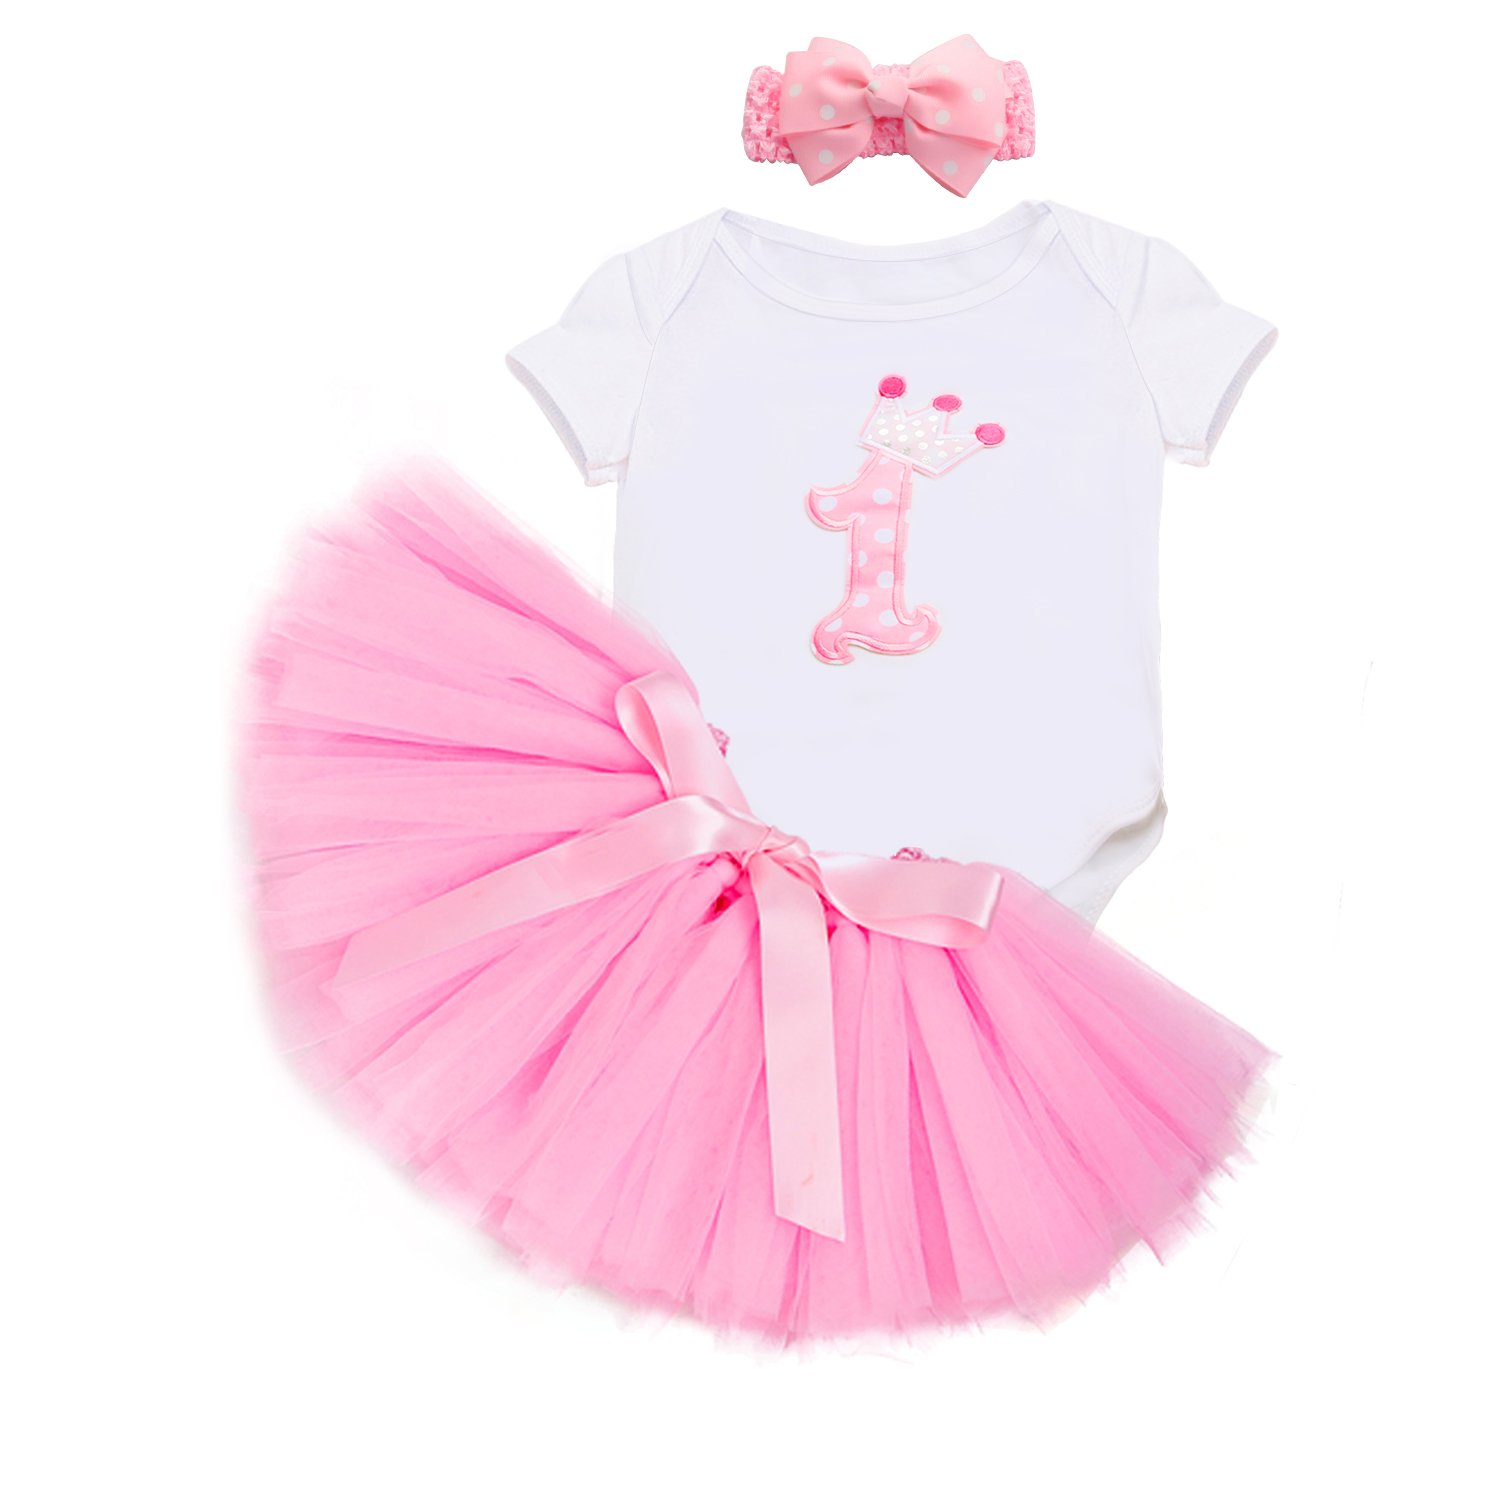 ACBAGI 1st Birthday Outfit Girl Party Dress for Baby Girls Birthday Party